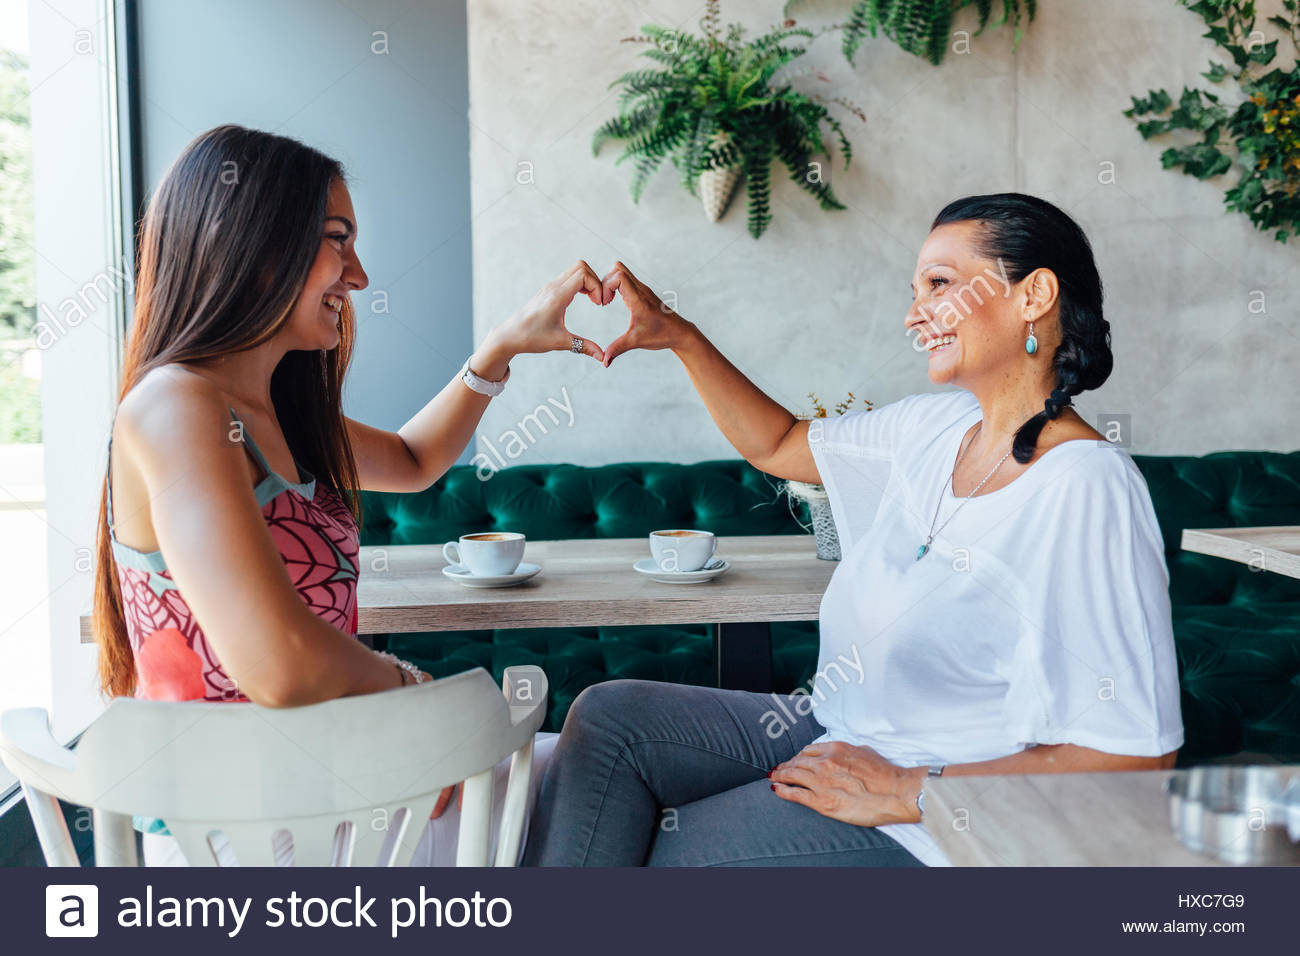 Mom and daughter making a heart with hands. Love coffee. - Stock Image